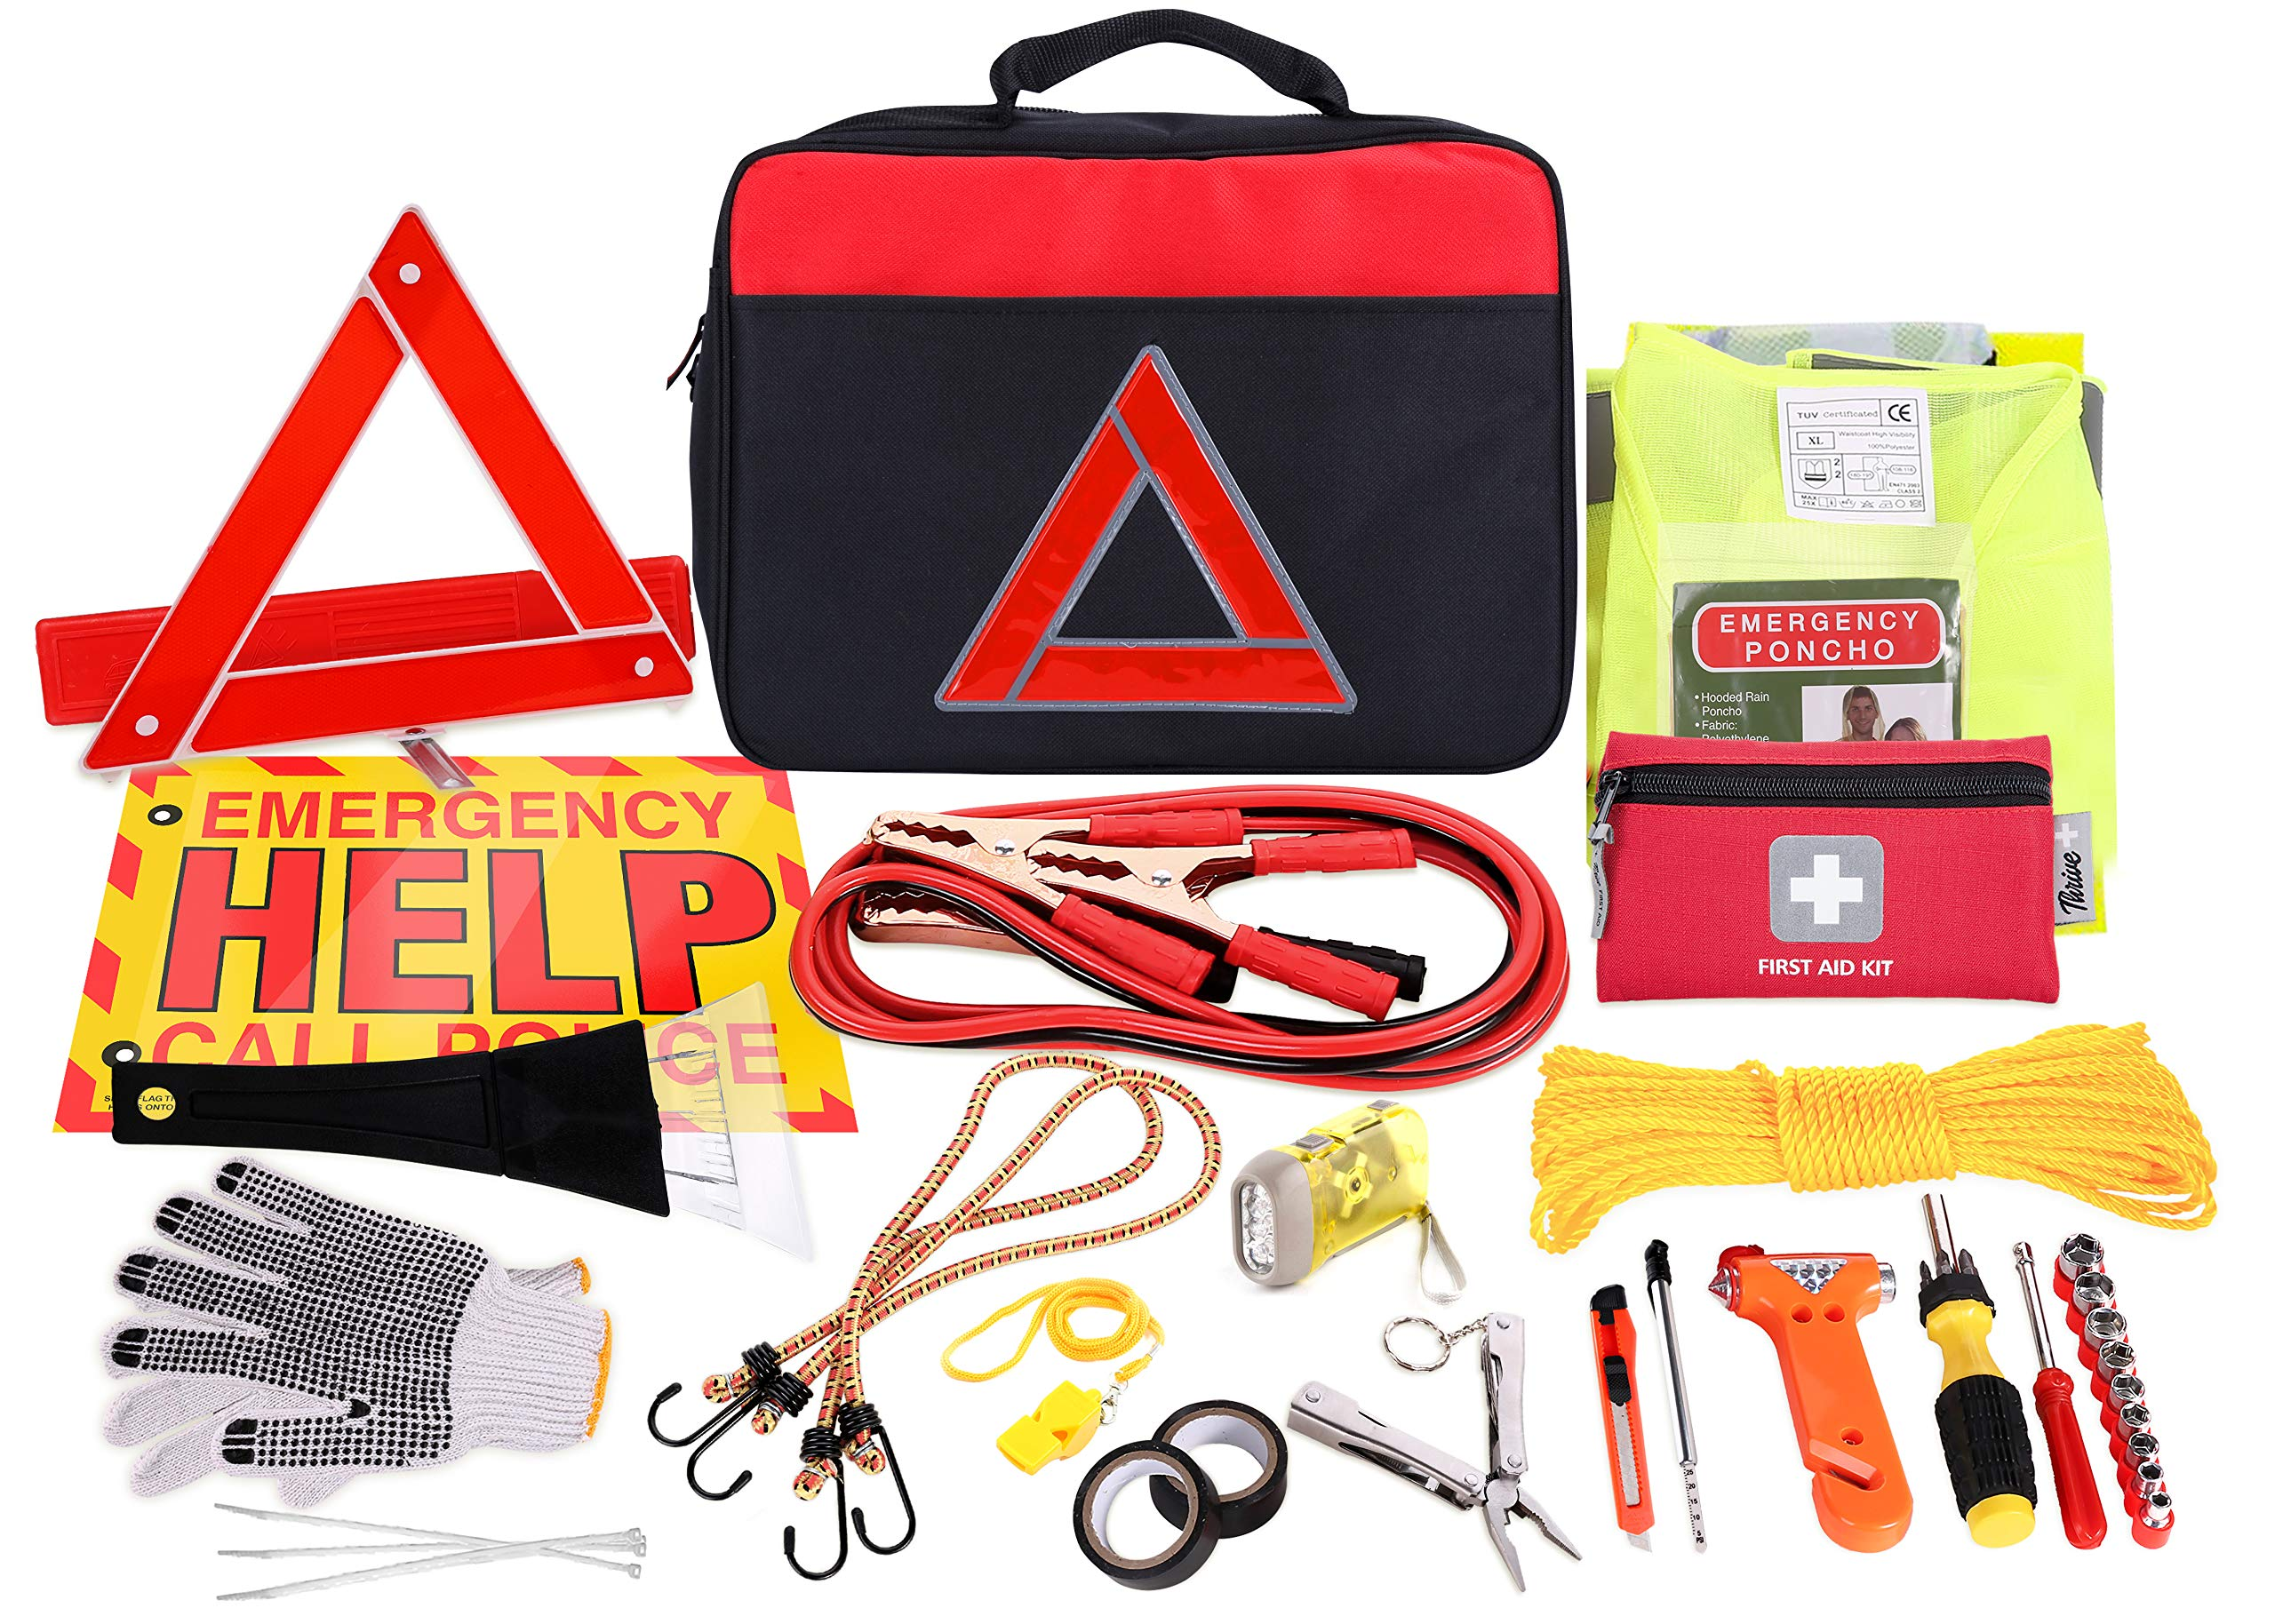 Ideal Winter Accessory for Your car Truck First Aid Kit Camper Thrive Roadside Assistance Auto Emergency Kit Contains Jumper Cables Case Reflective Safety Triangle and More Tools